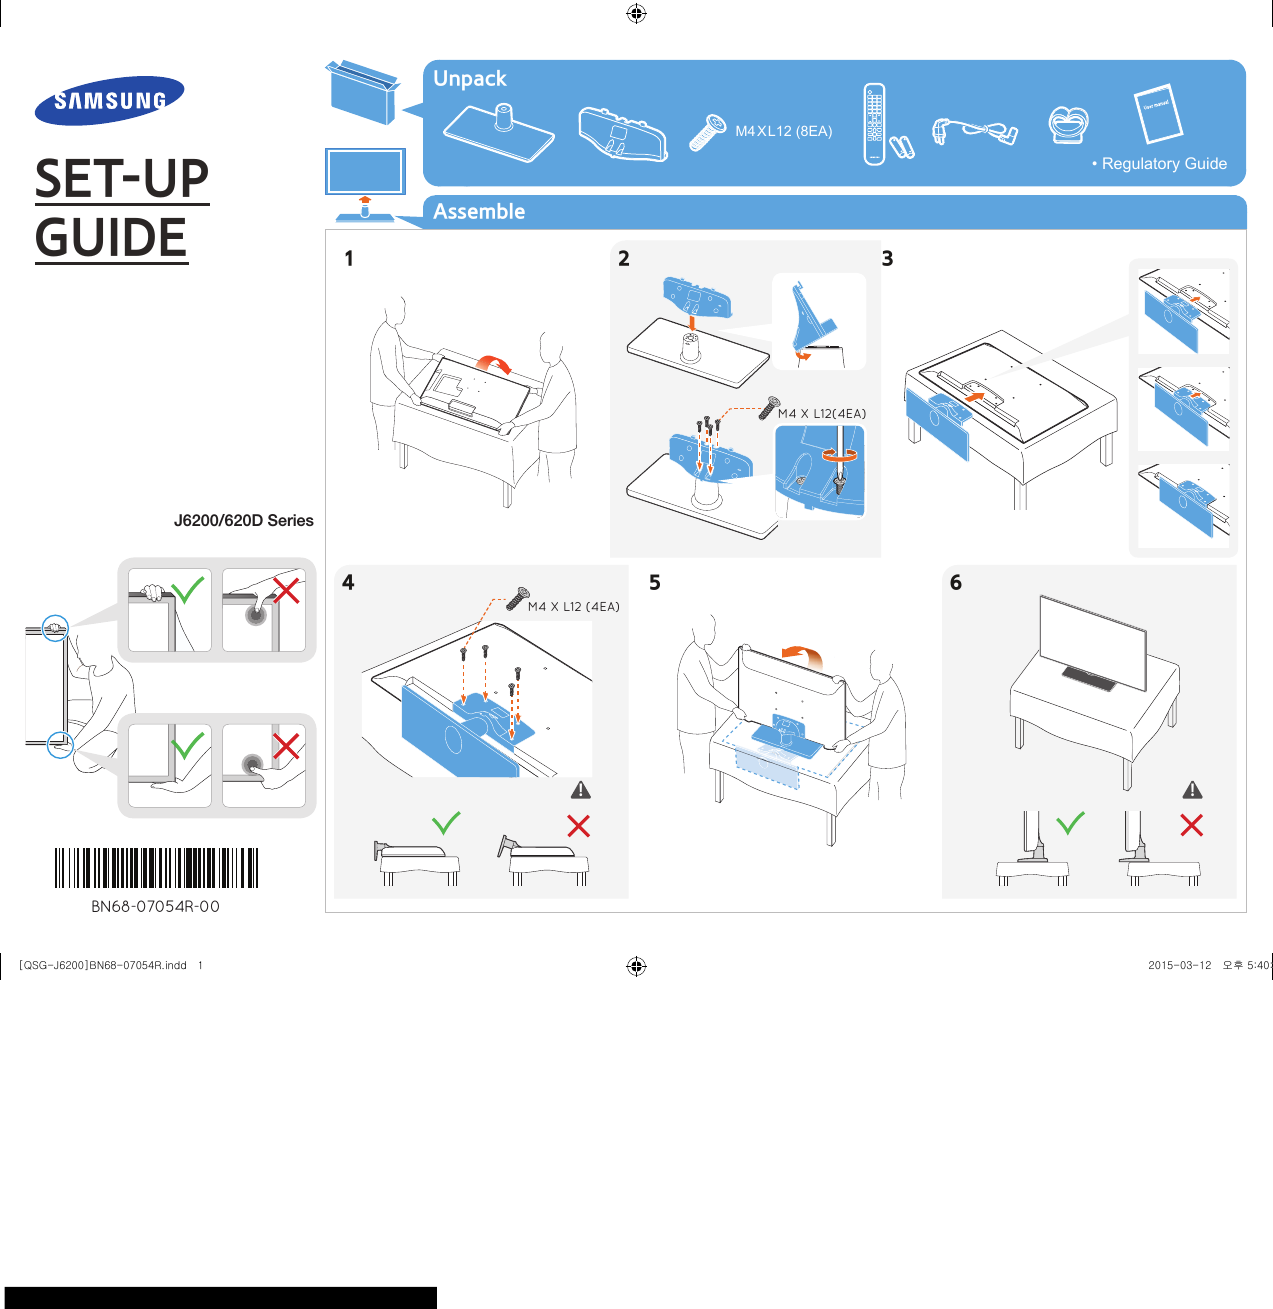 Samsung Smart Tv Wiring Diagram Library Philips 40pfl3606 Lcd Power Supply Schematic Electro Help 6200 Setup Manual 1003435 Manualslib Makes It Easy To Find Manuals Online